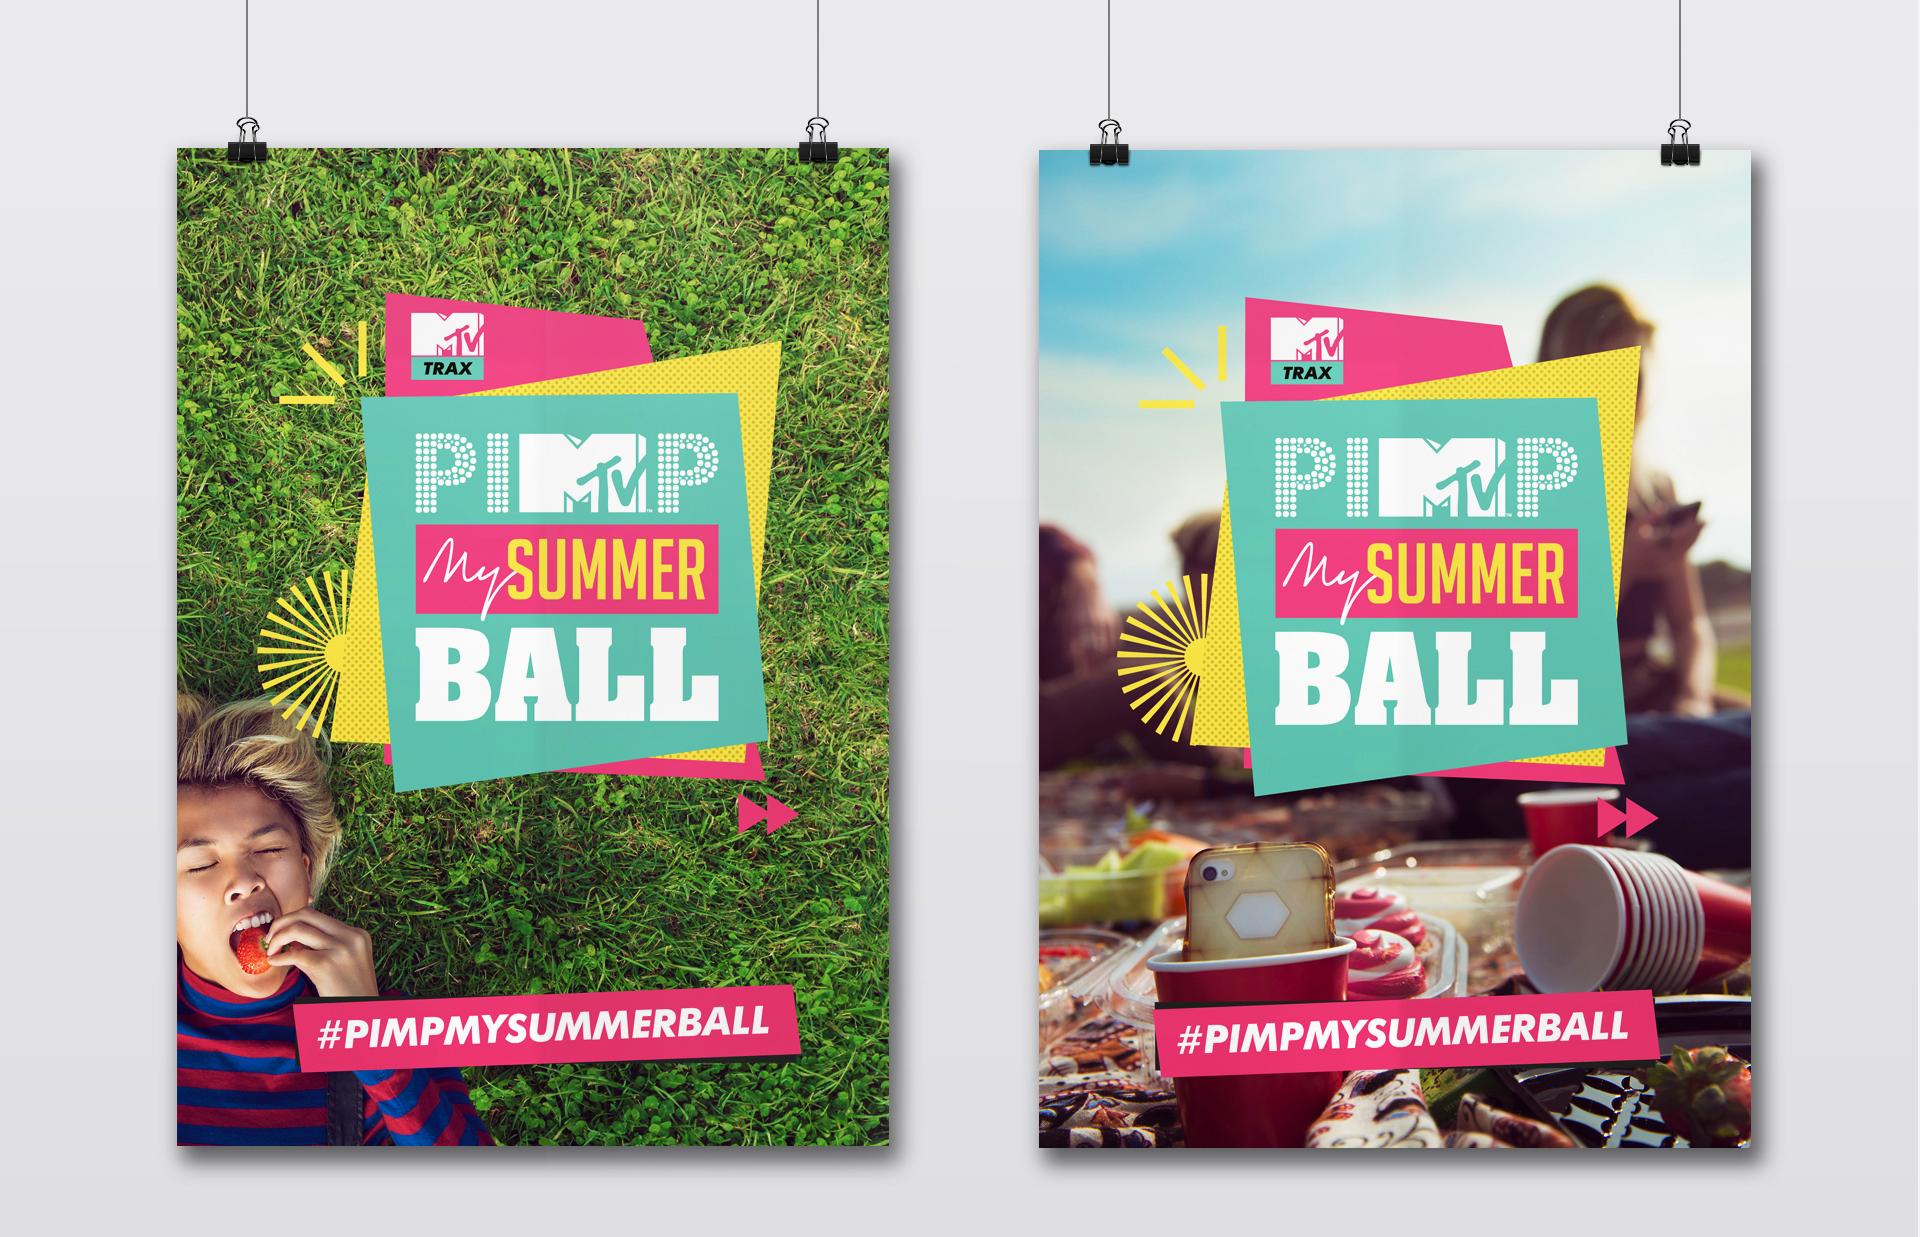 Pimp My Summer Ball - posters